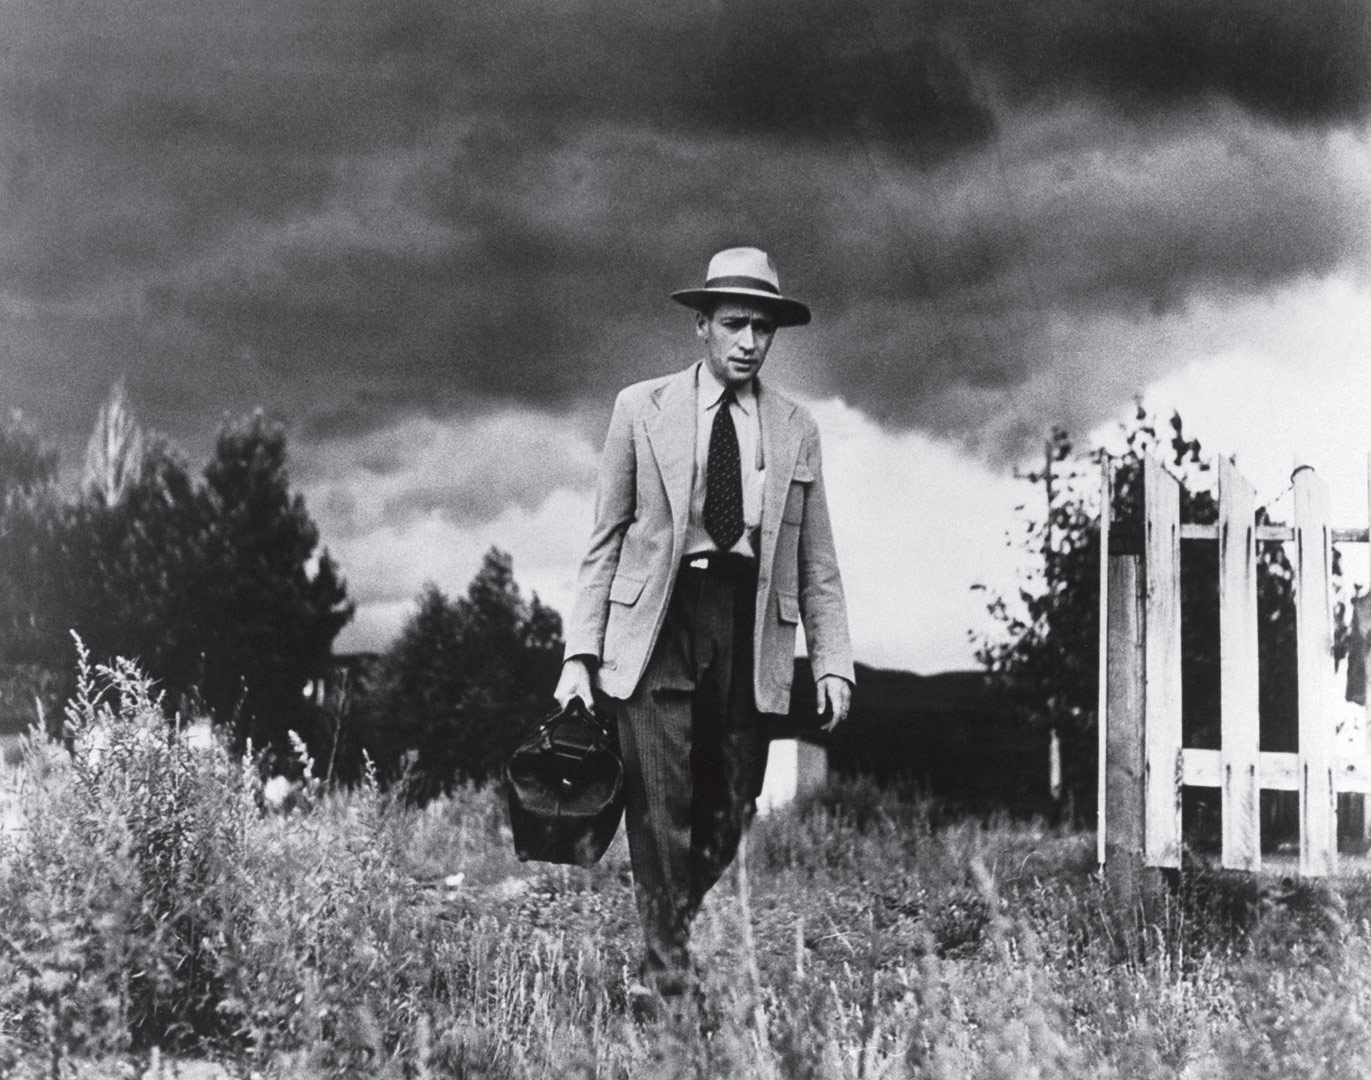 time-100-influential-photos-w-eugene-smith-country-doctor-42